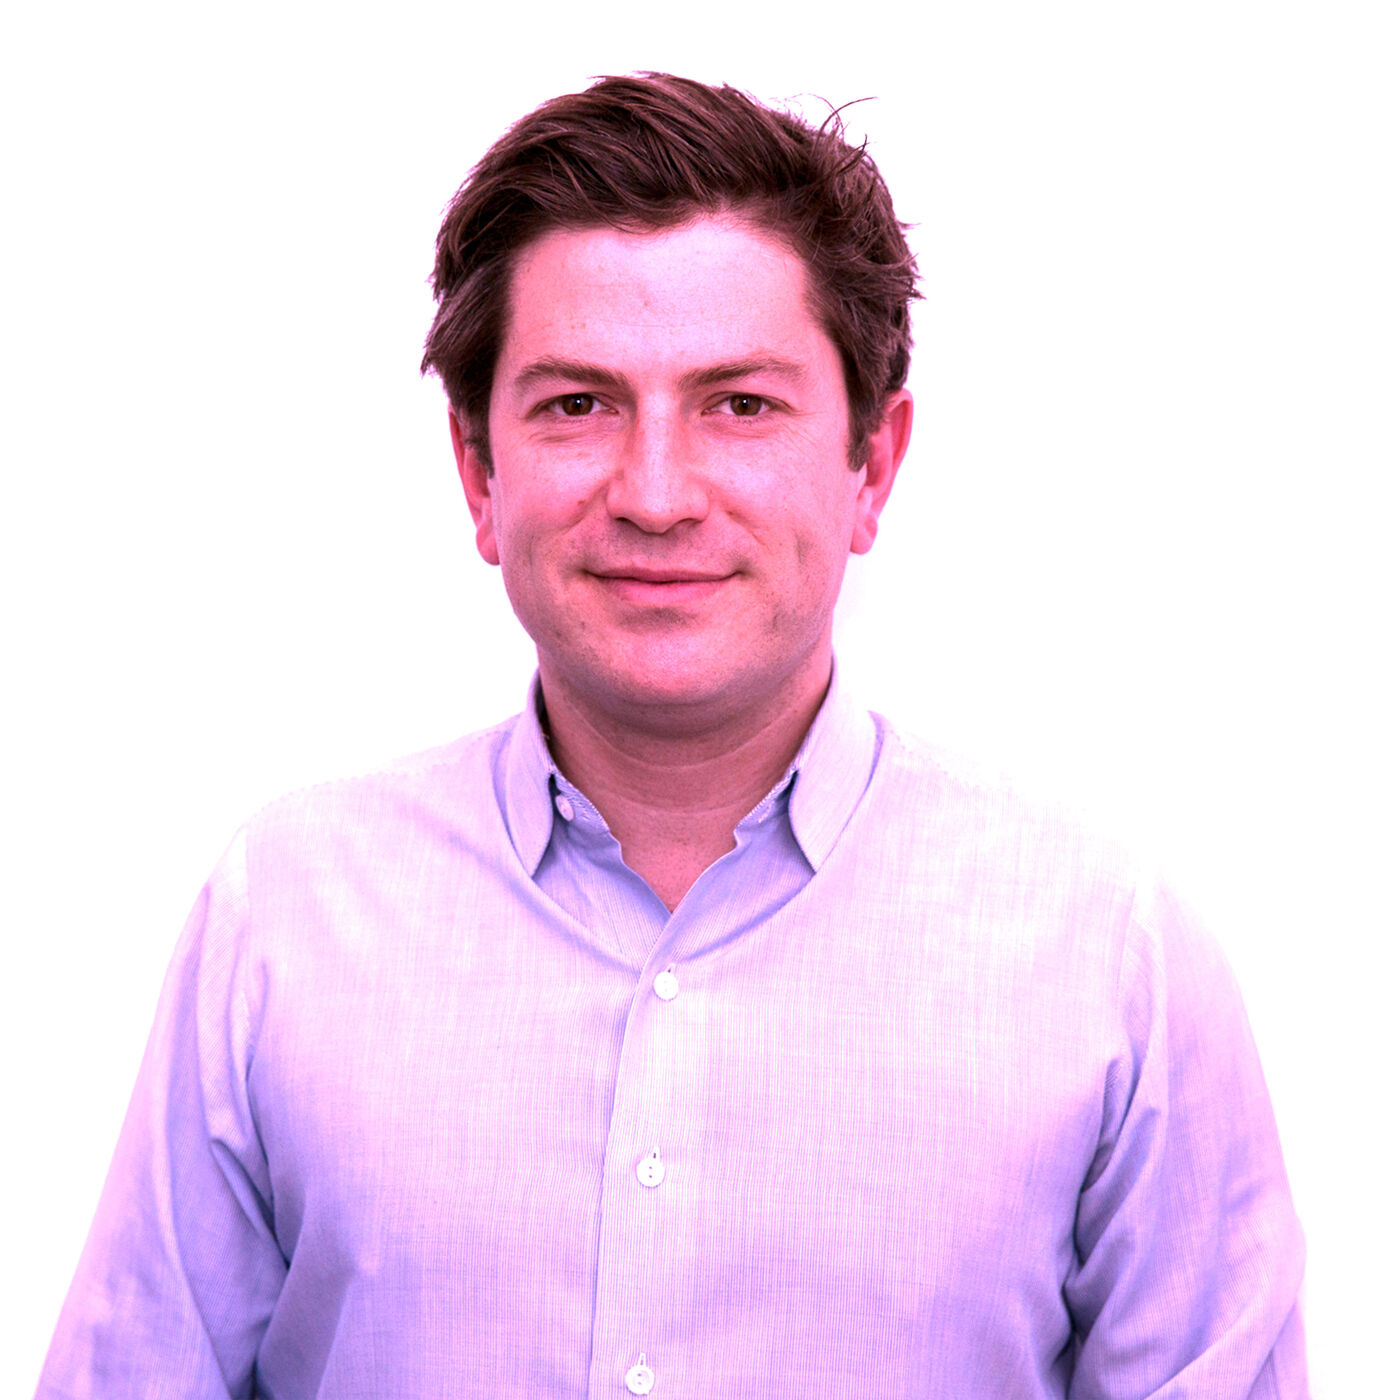 Interview with Xavier Ballester, Director at Angel Investment Network on finding investment to grow your pizzeria business (ENGLISH)